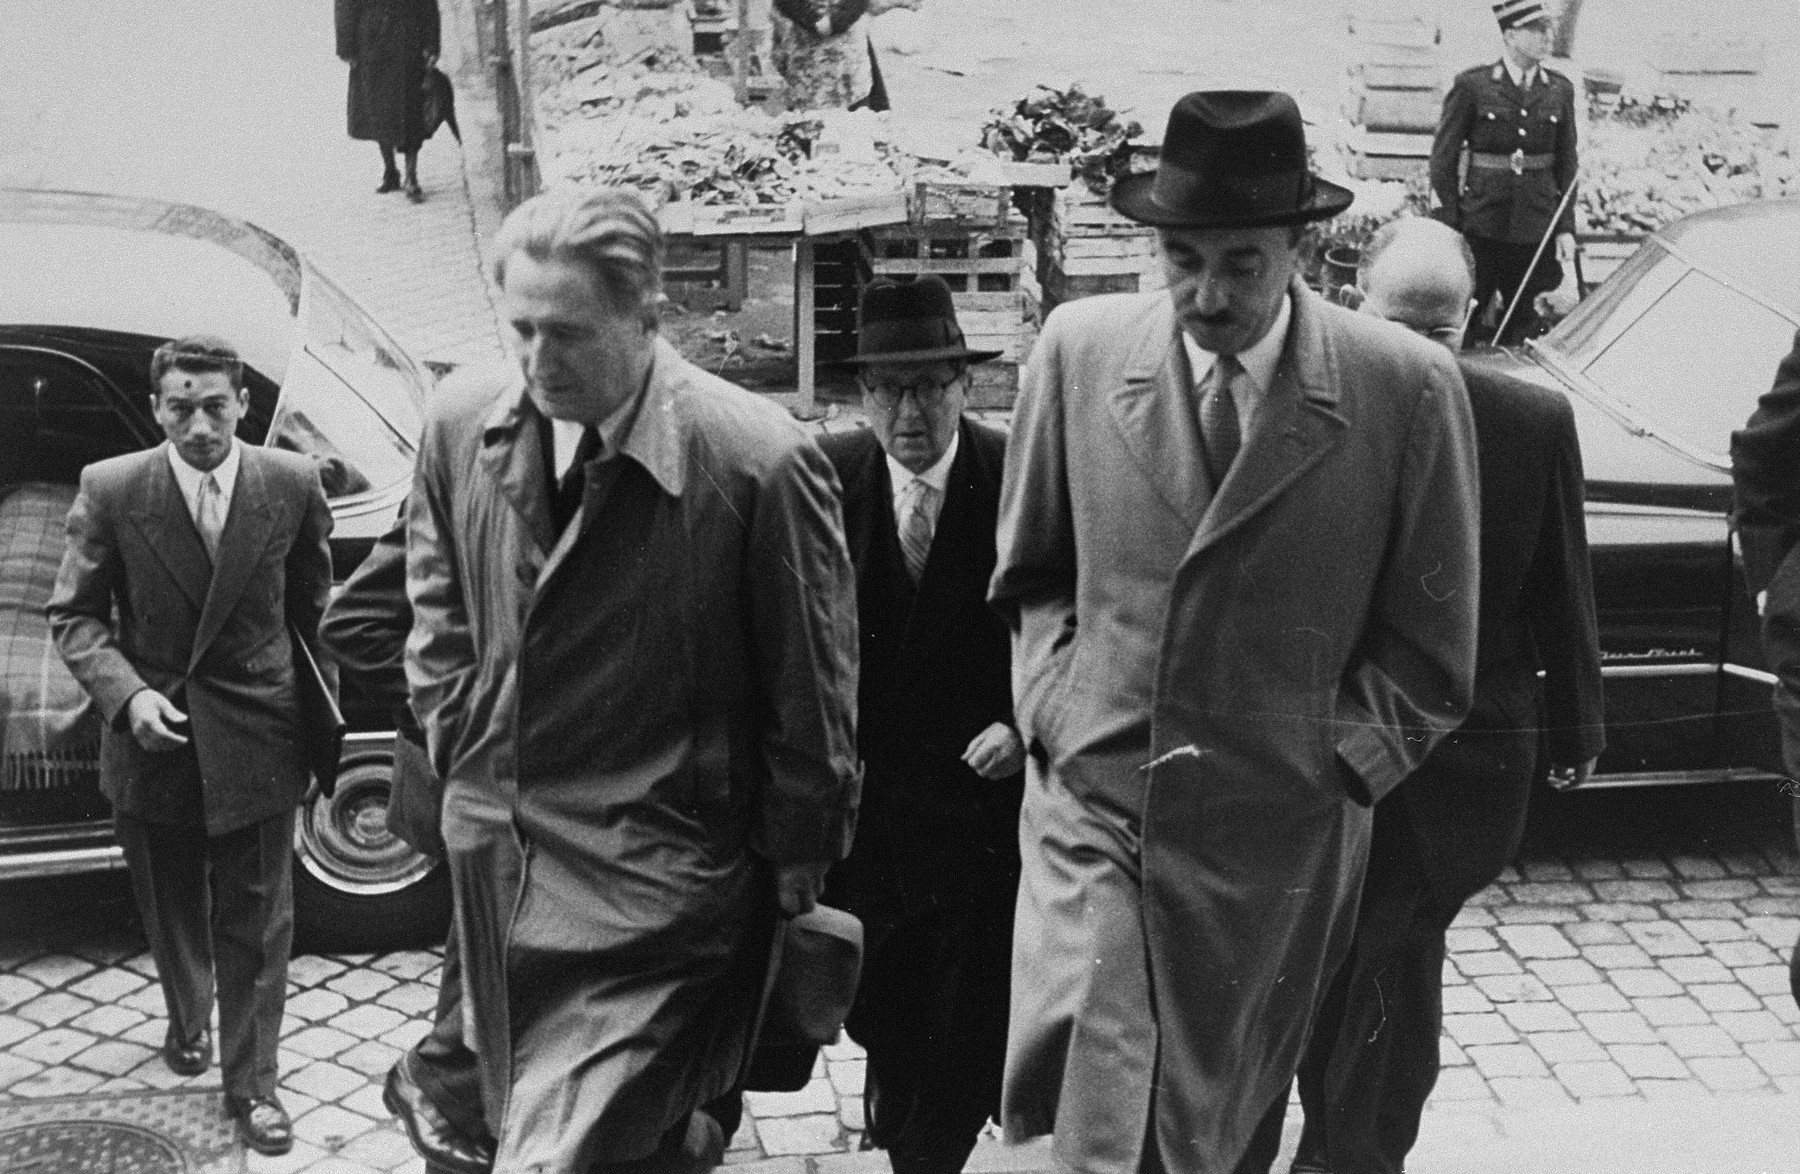 The arrival of Israeli Foreign Minister Moshe Sharett (right) and Nahum Goldman (left), head of the Committee on Jewish Material Claims, at the Luxembourg city hall for the signing of the Reparations Agreement between West Germany, Israel, and the Committee.